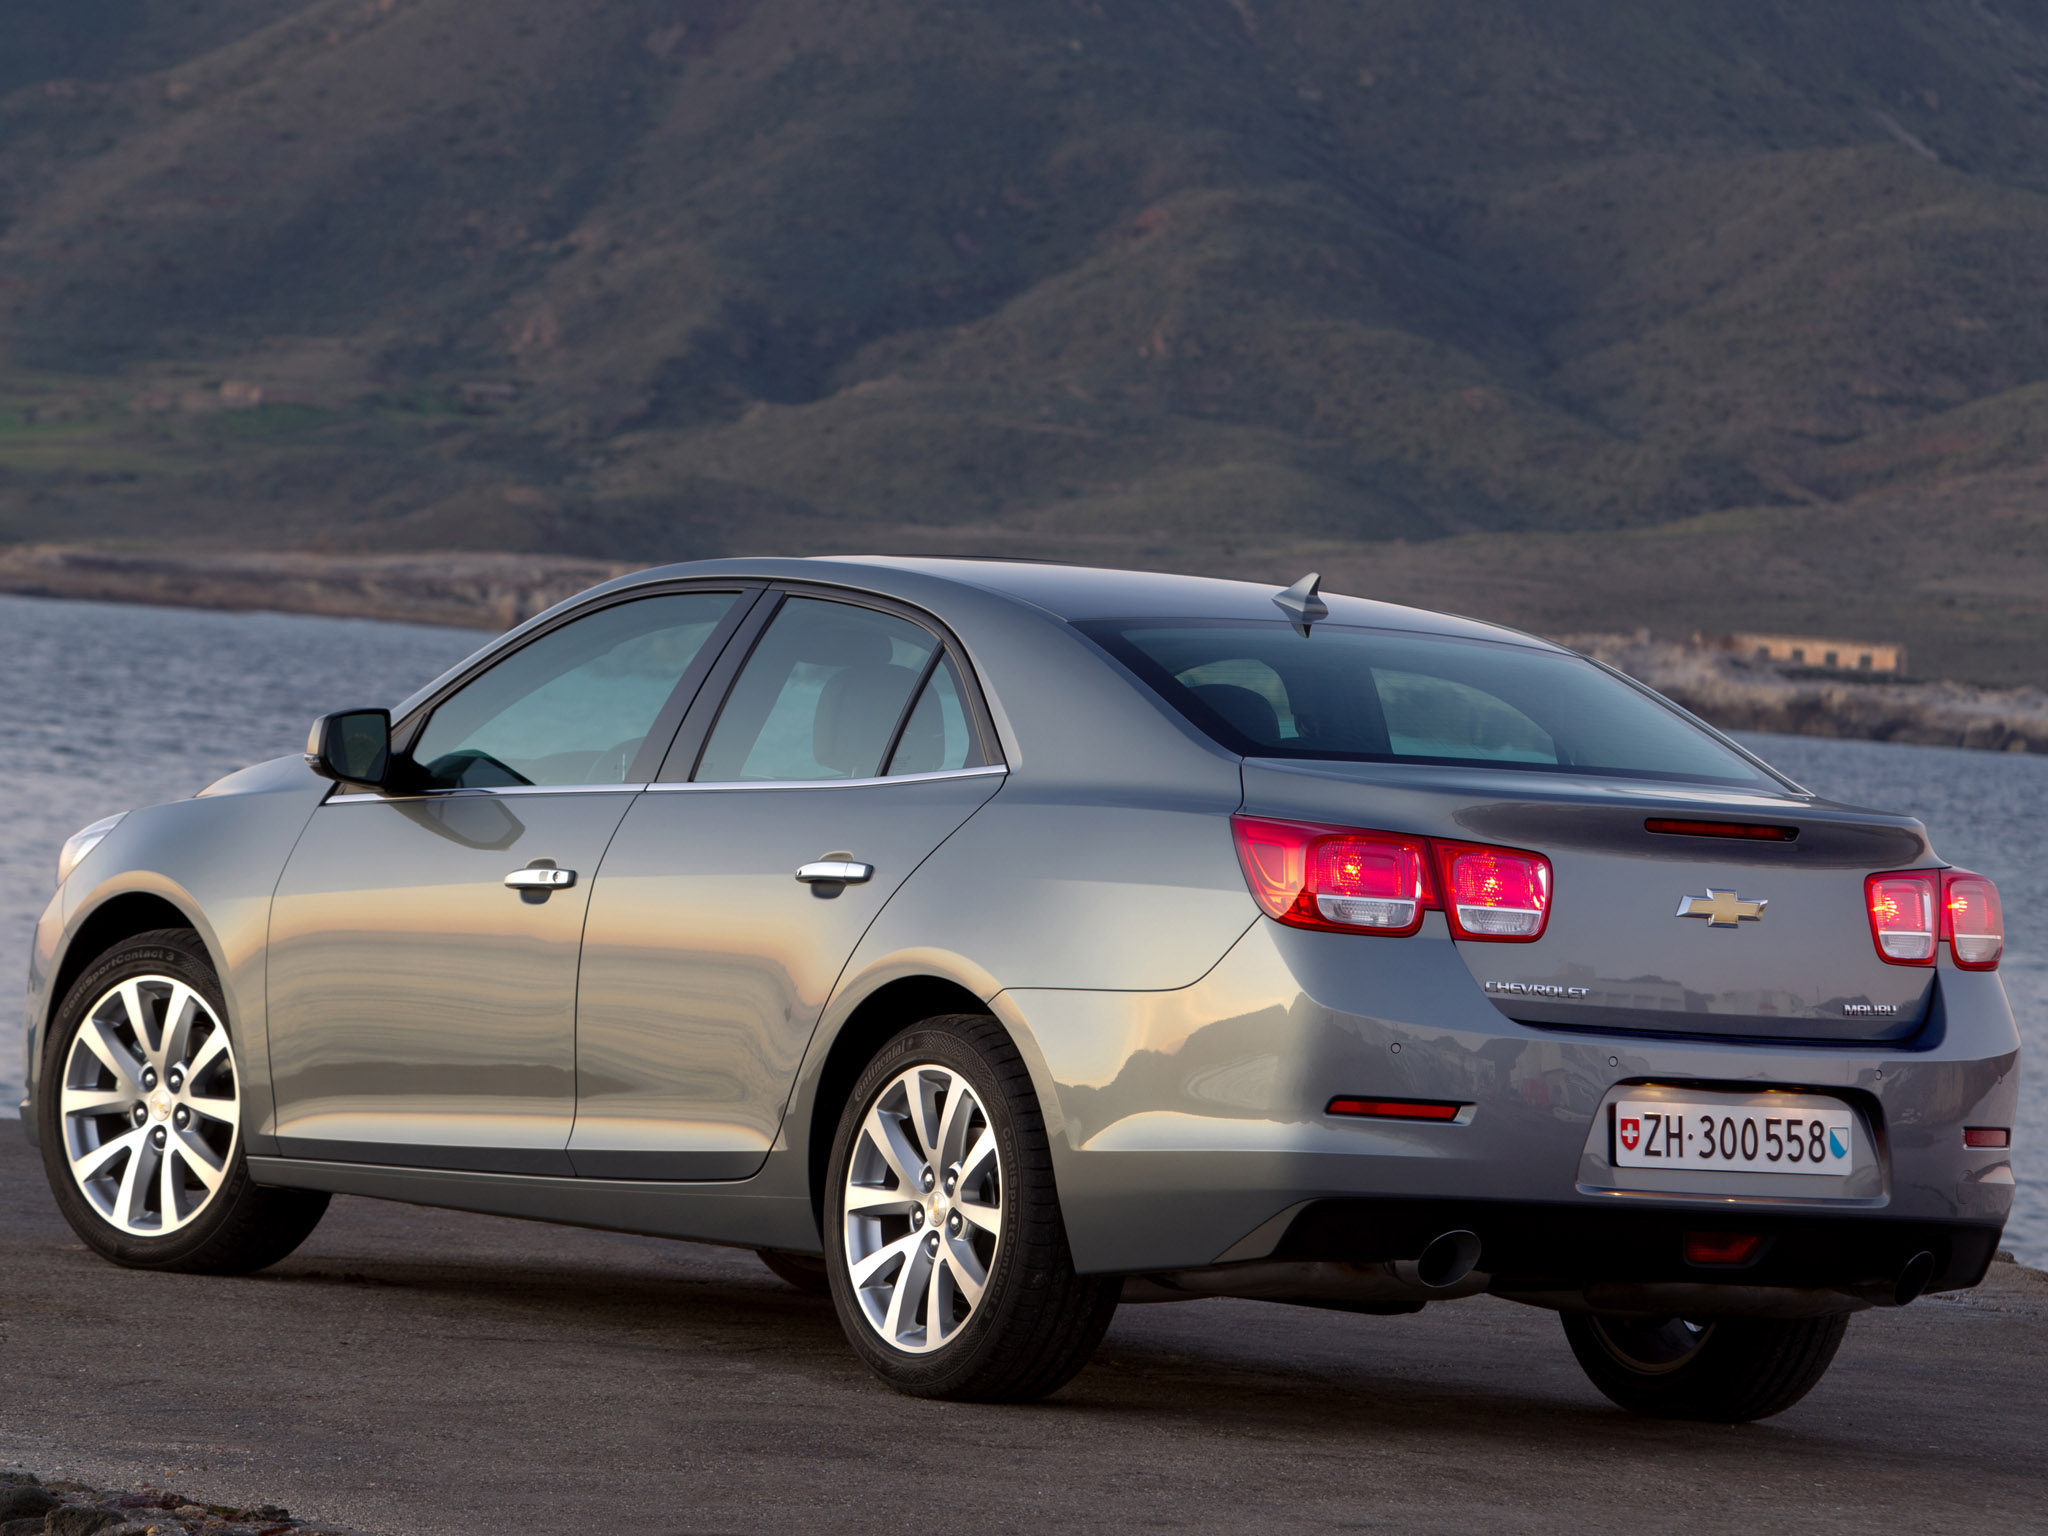 chevrolet malibu 2012 chevrolet malibu 2012 photo 07 car. Cars Review. Best American Auto & Cars Review